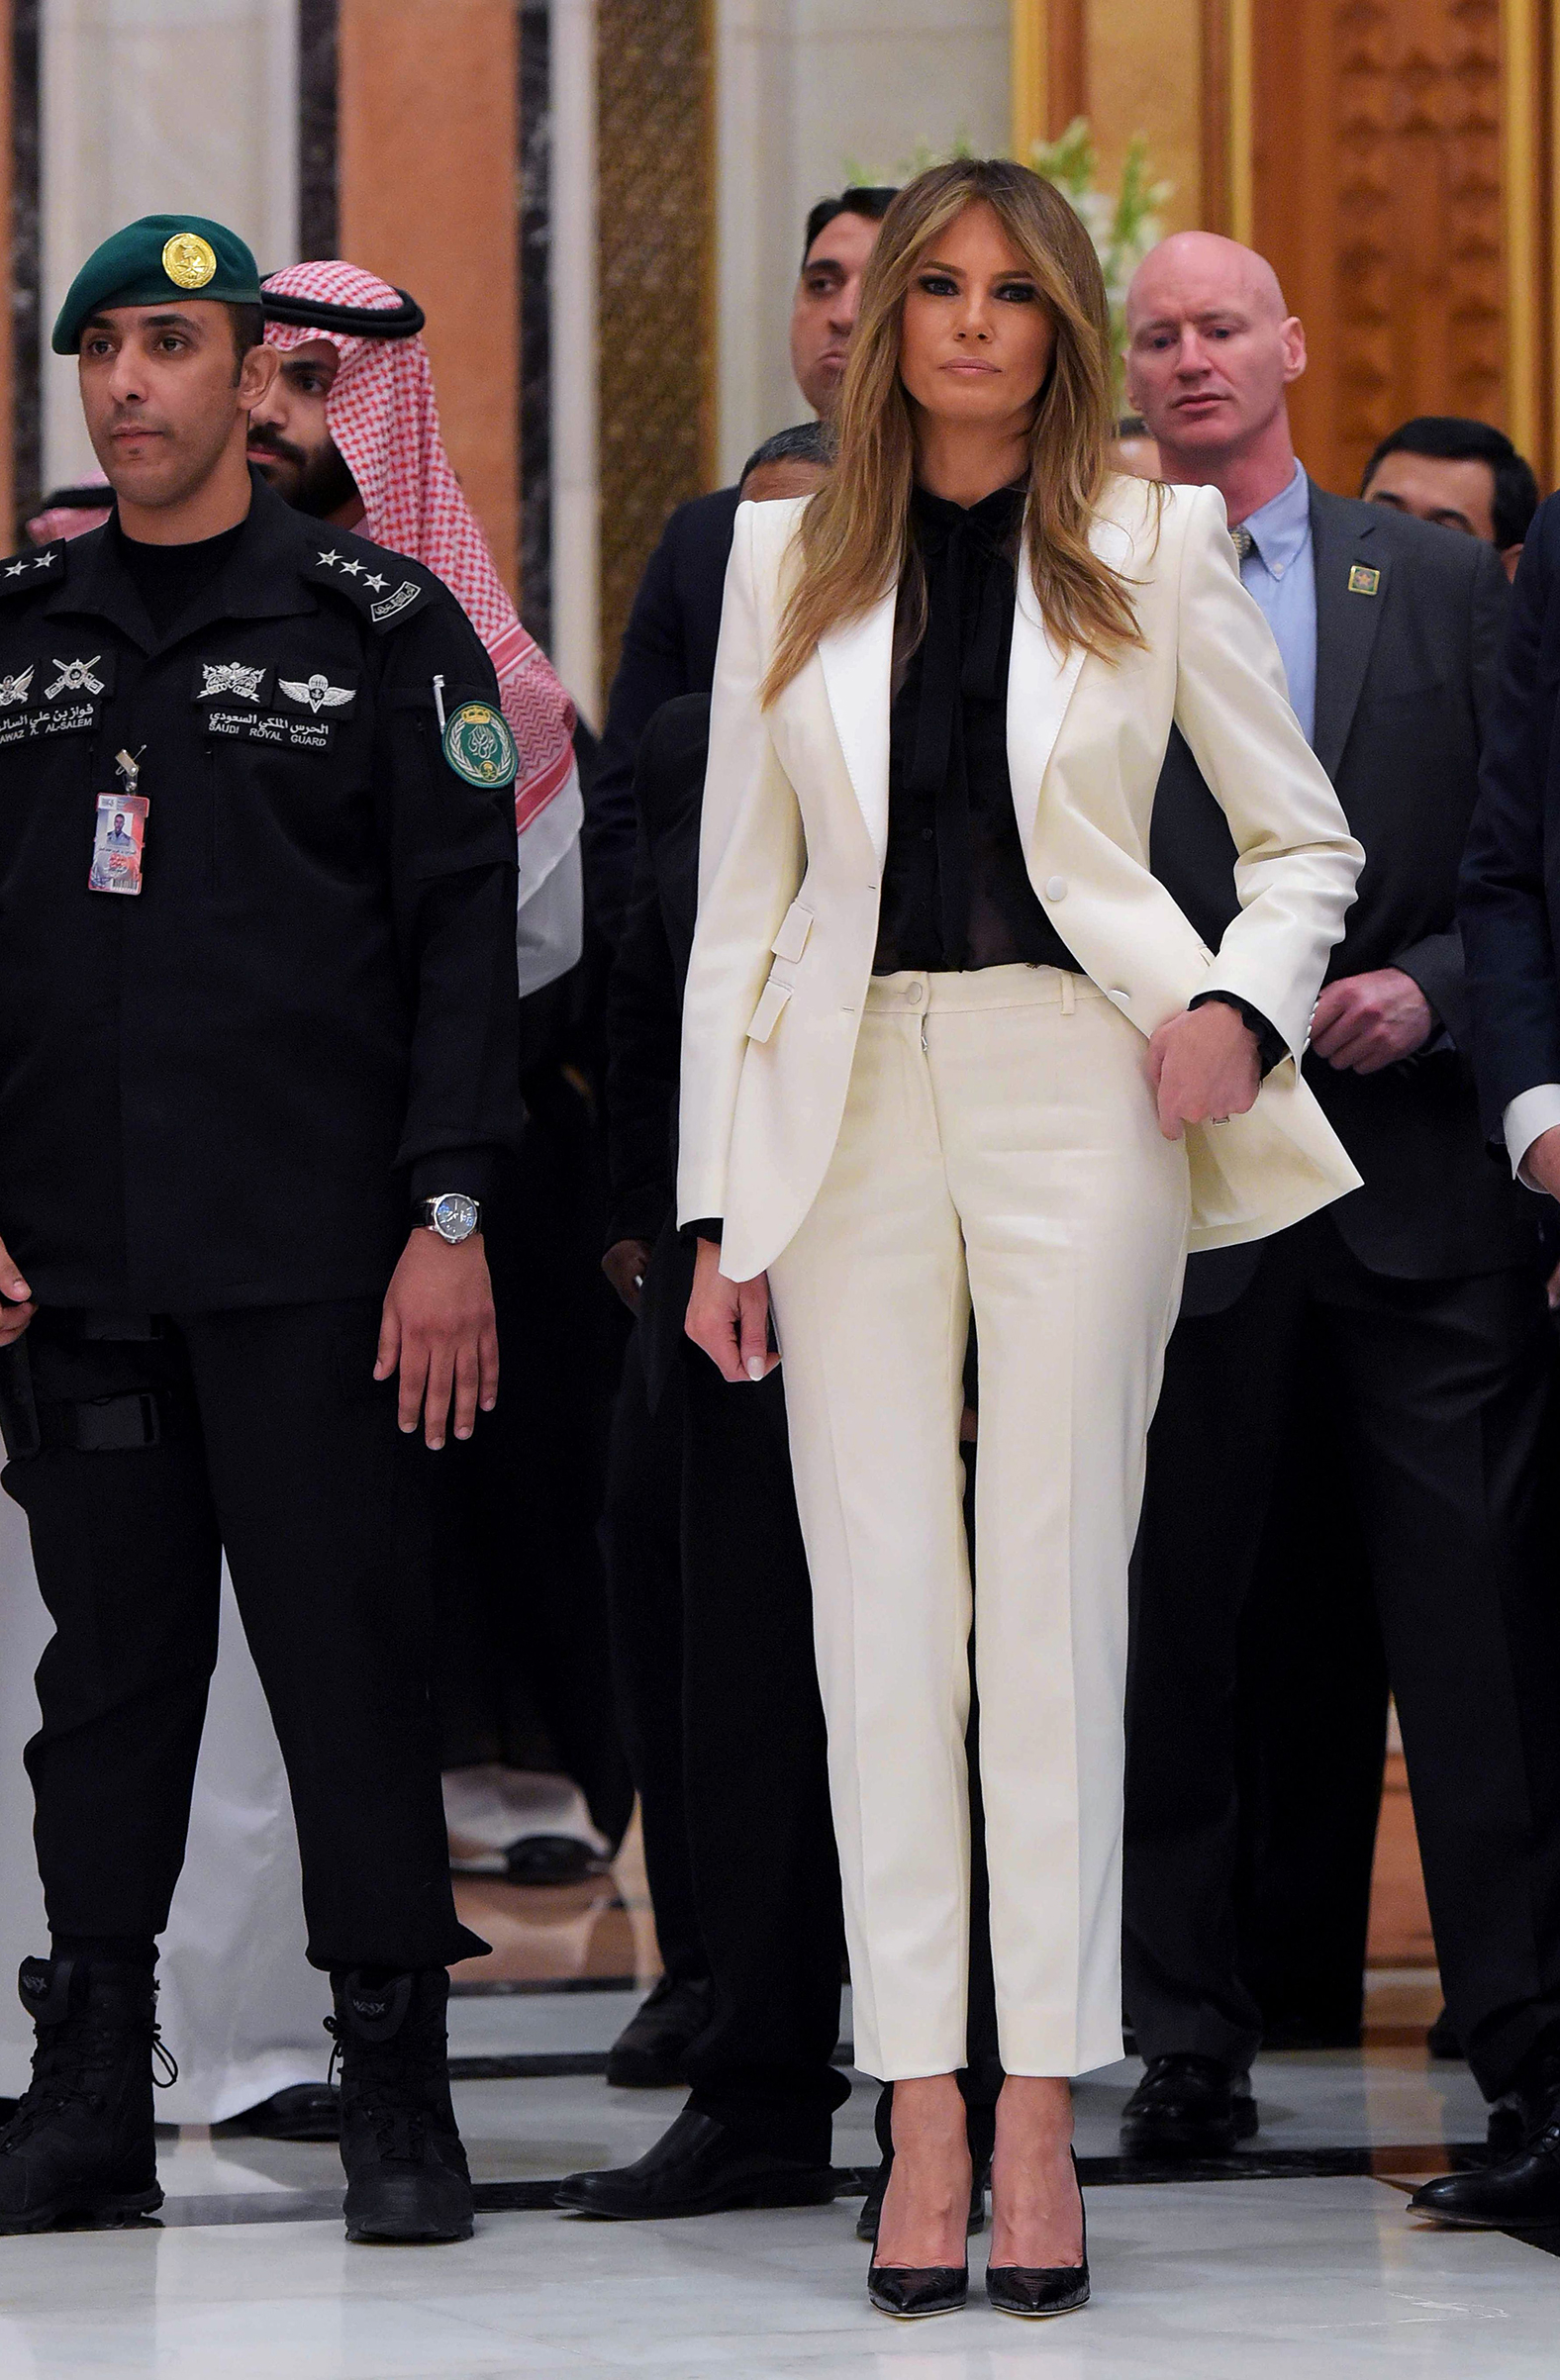 First lady Melania Trump wearing a cream Dolce & Gabbana suit, ahead of the Arab Islamic American Summit at the King Abdulaziz Conference Center in Riyadh on May 21, 2017.